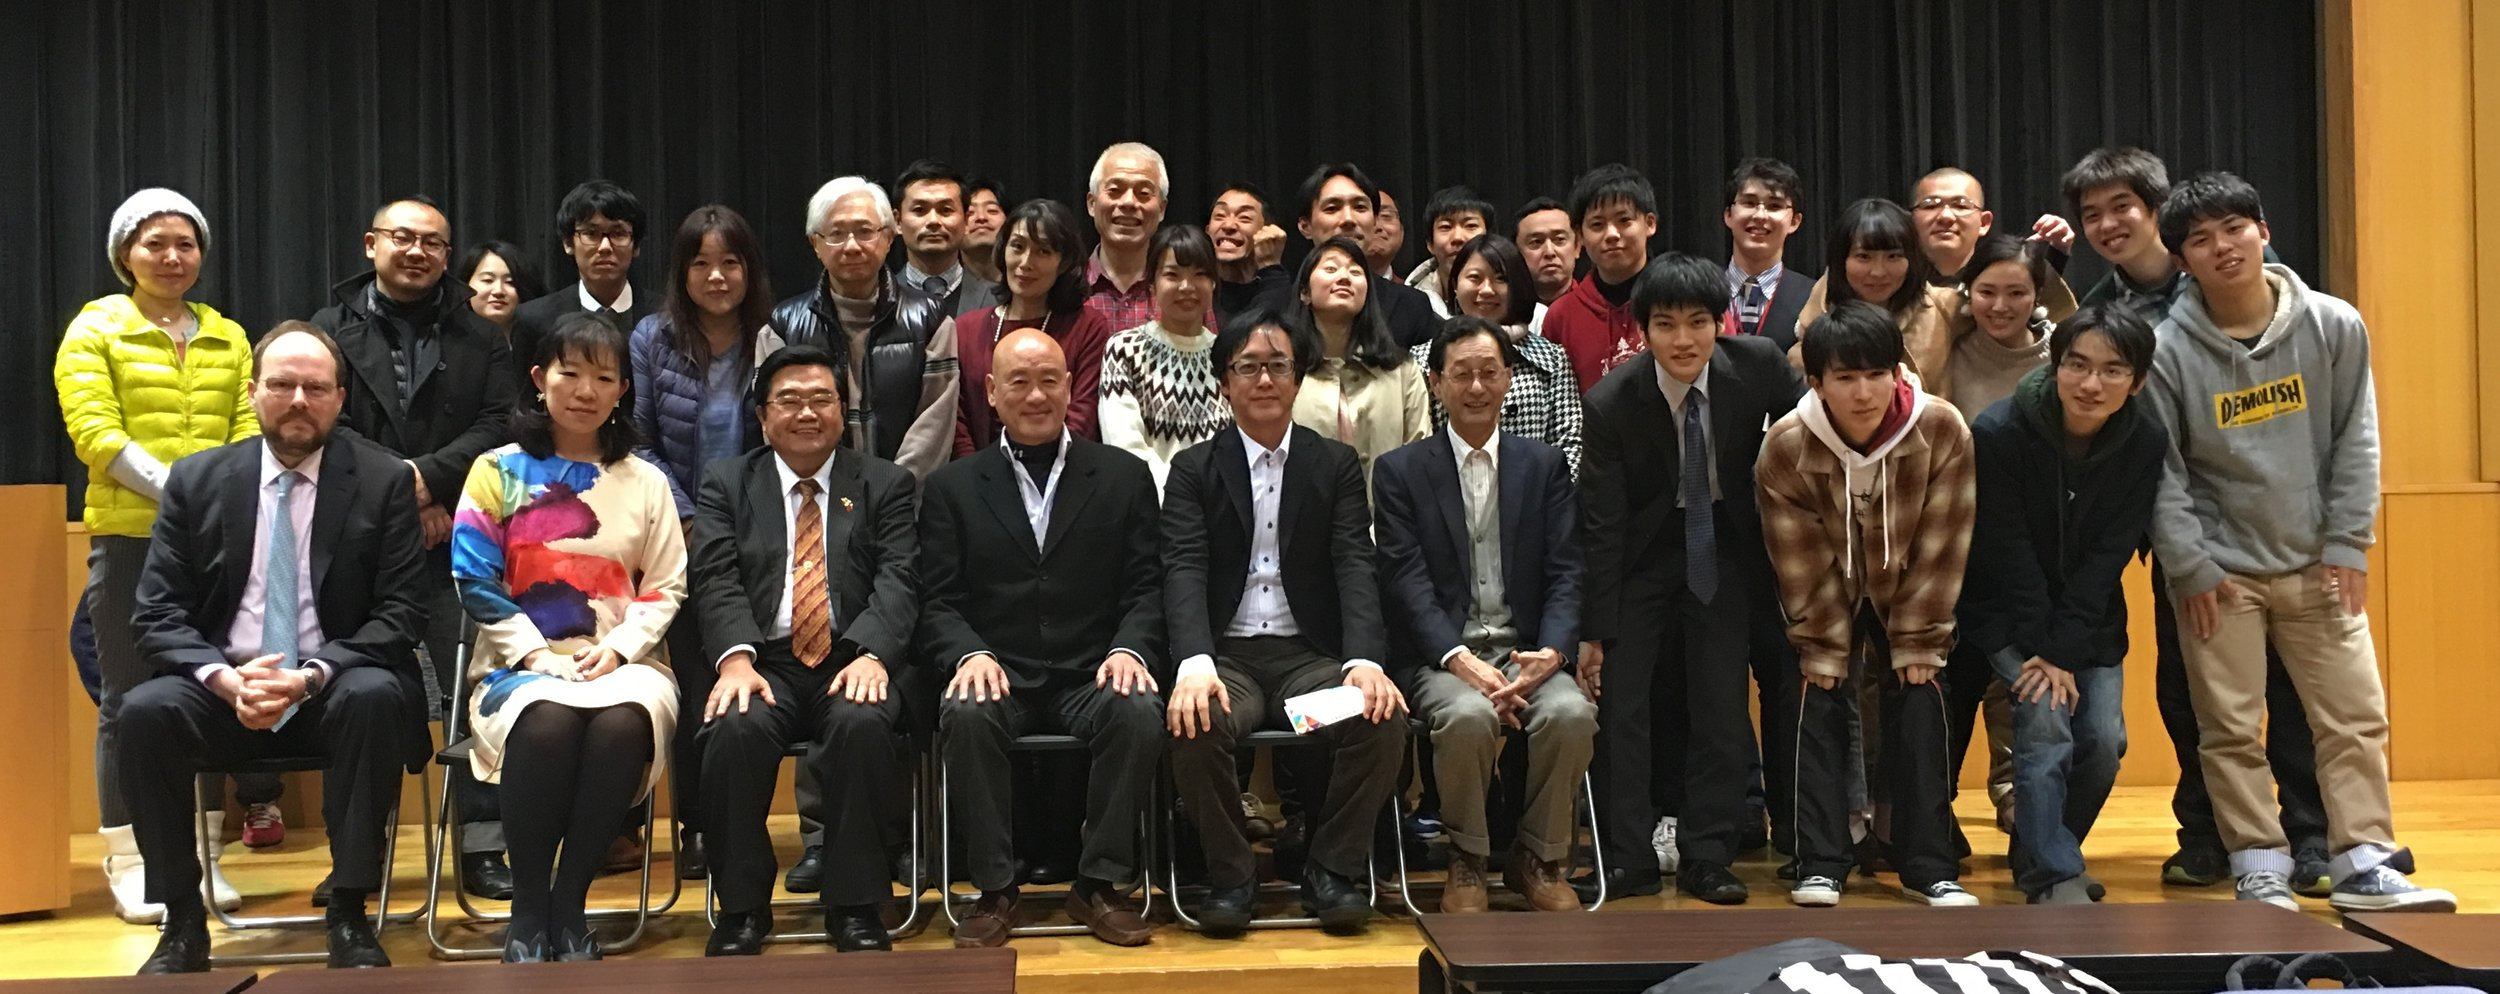 The speakers with some of the participants, January 7 (photo courtesy of Yasunori Noto)